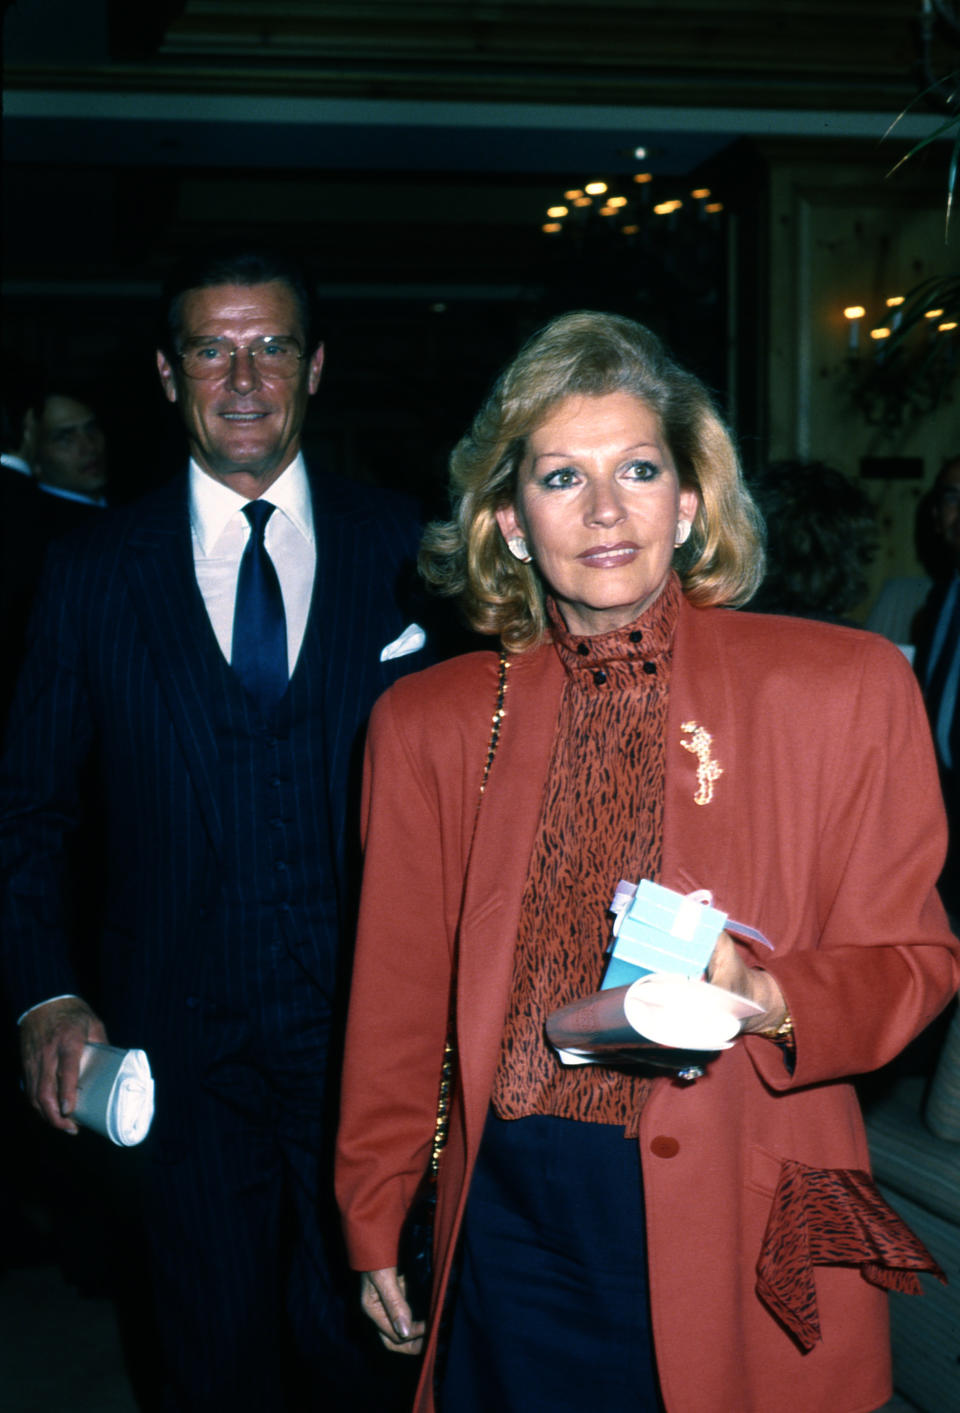 <p>Luisa Mattioli e Roger Moore nel 1988 a Los Angeles (Photo by Donaldson Collection/Michael Ochs Archives/Getty Images)</p>